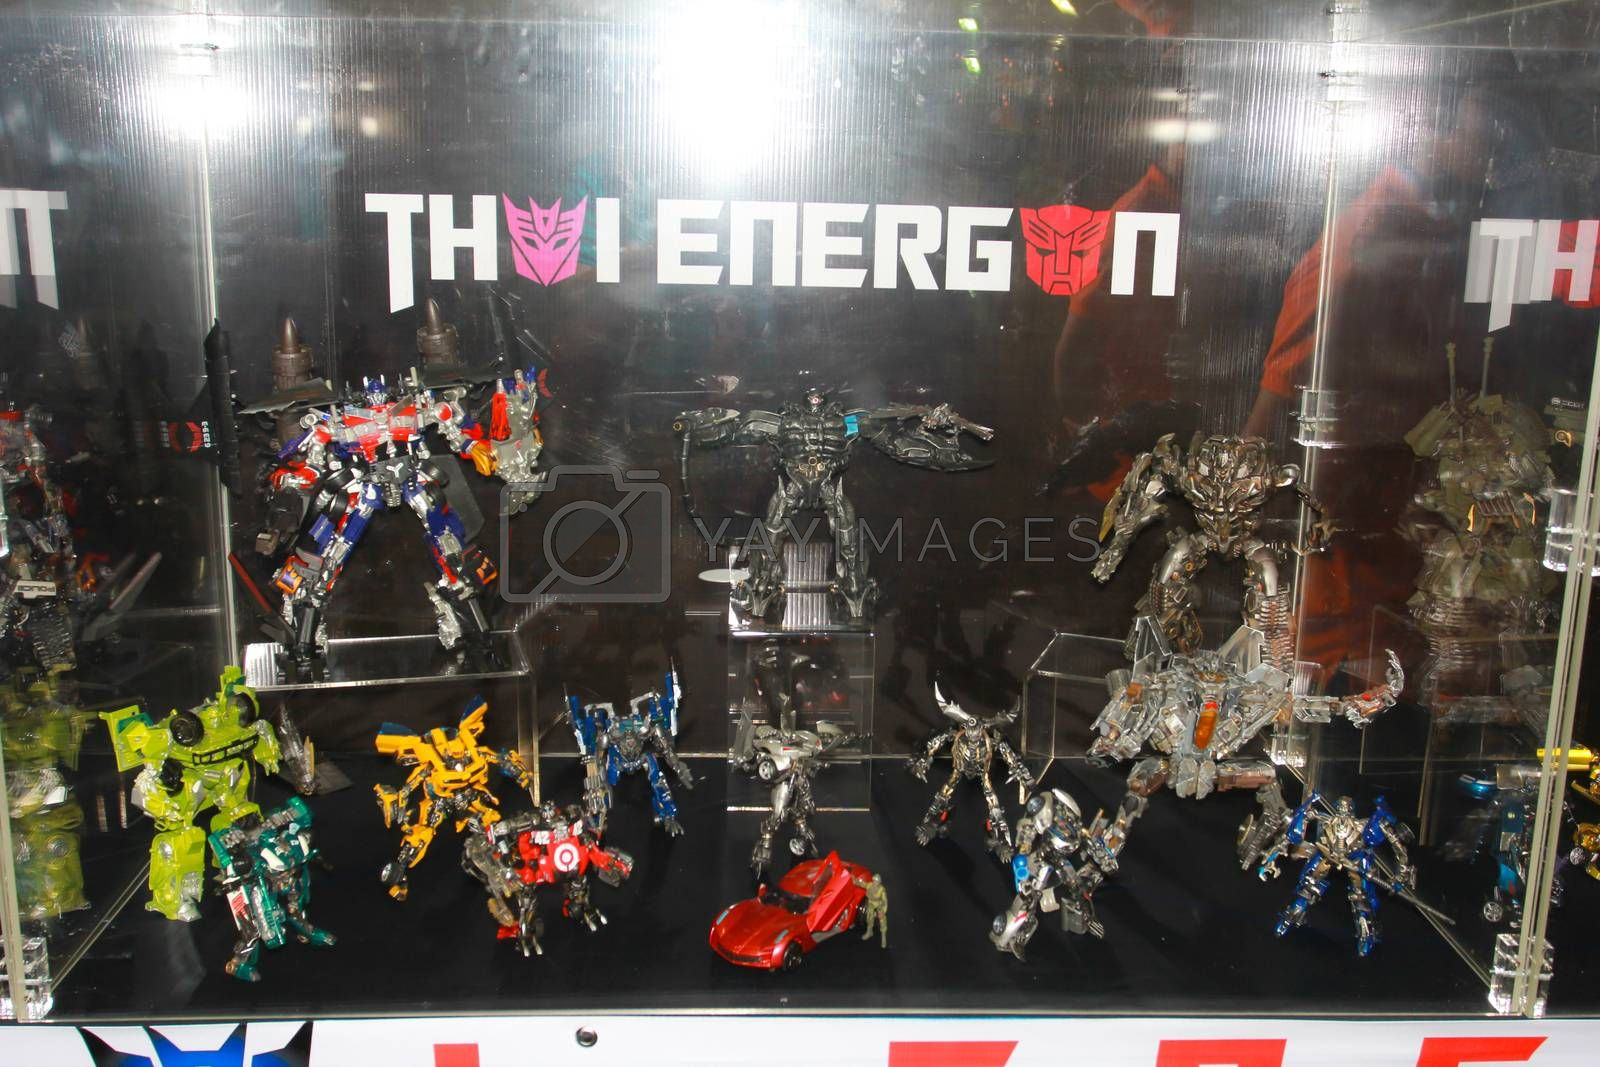 Royalty free image of A model of the character Transformer from the movies and comics  by redthirteen